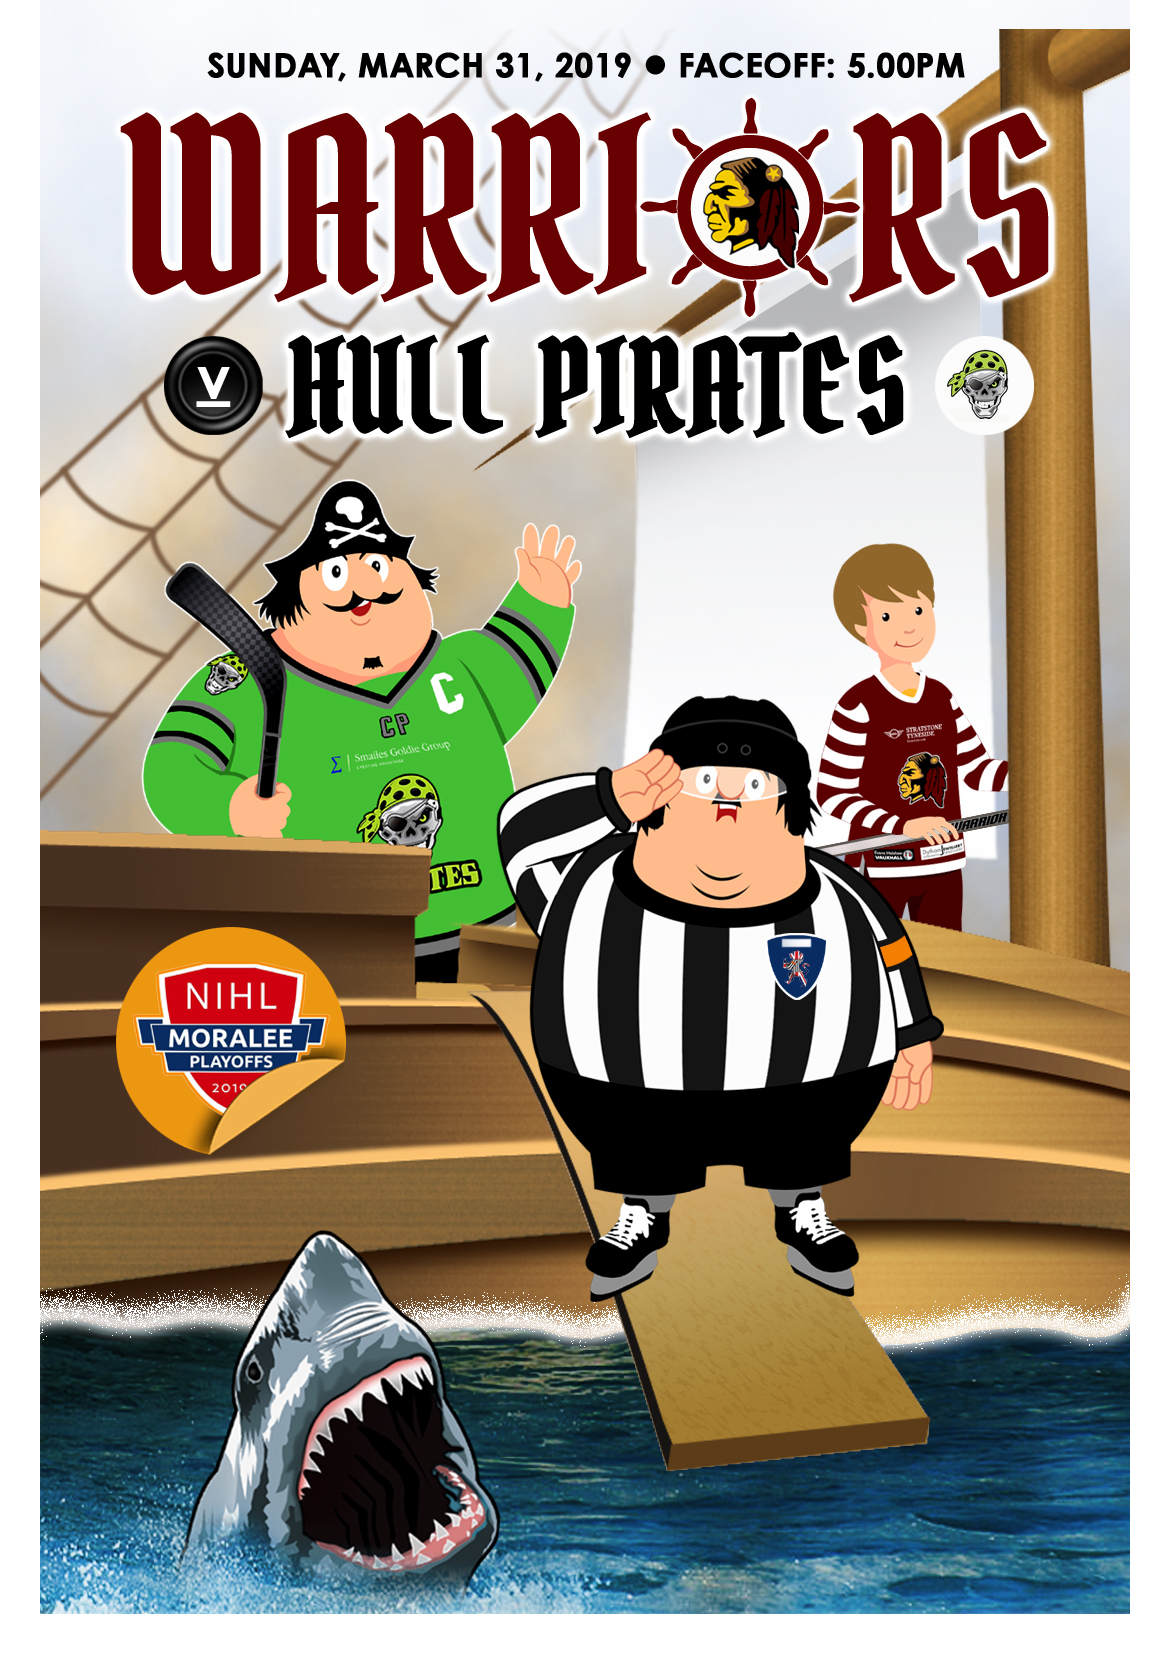 Whitley Warriors vs Hull Pirates @ Whitley Bay Ice Rink, Sunday 31 March 2019, face off 5pm